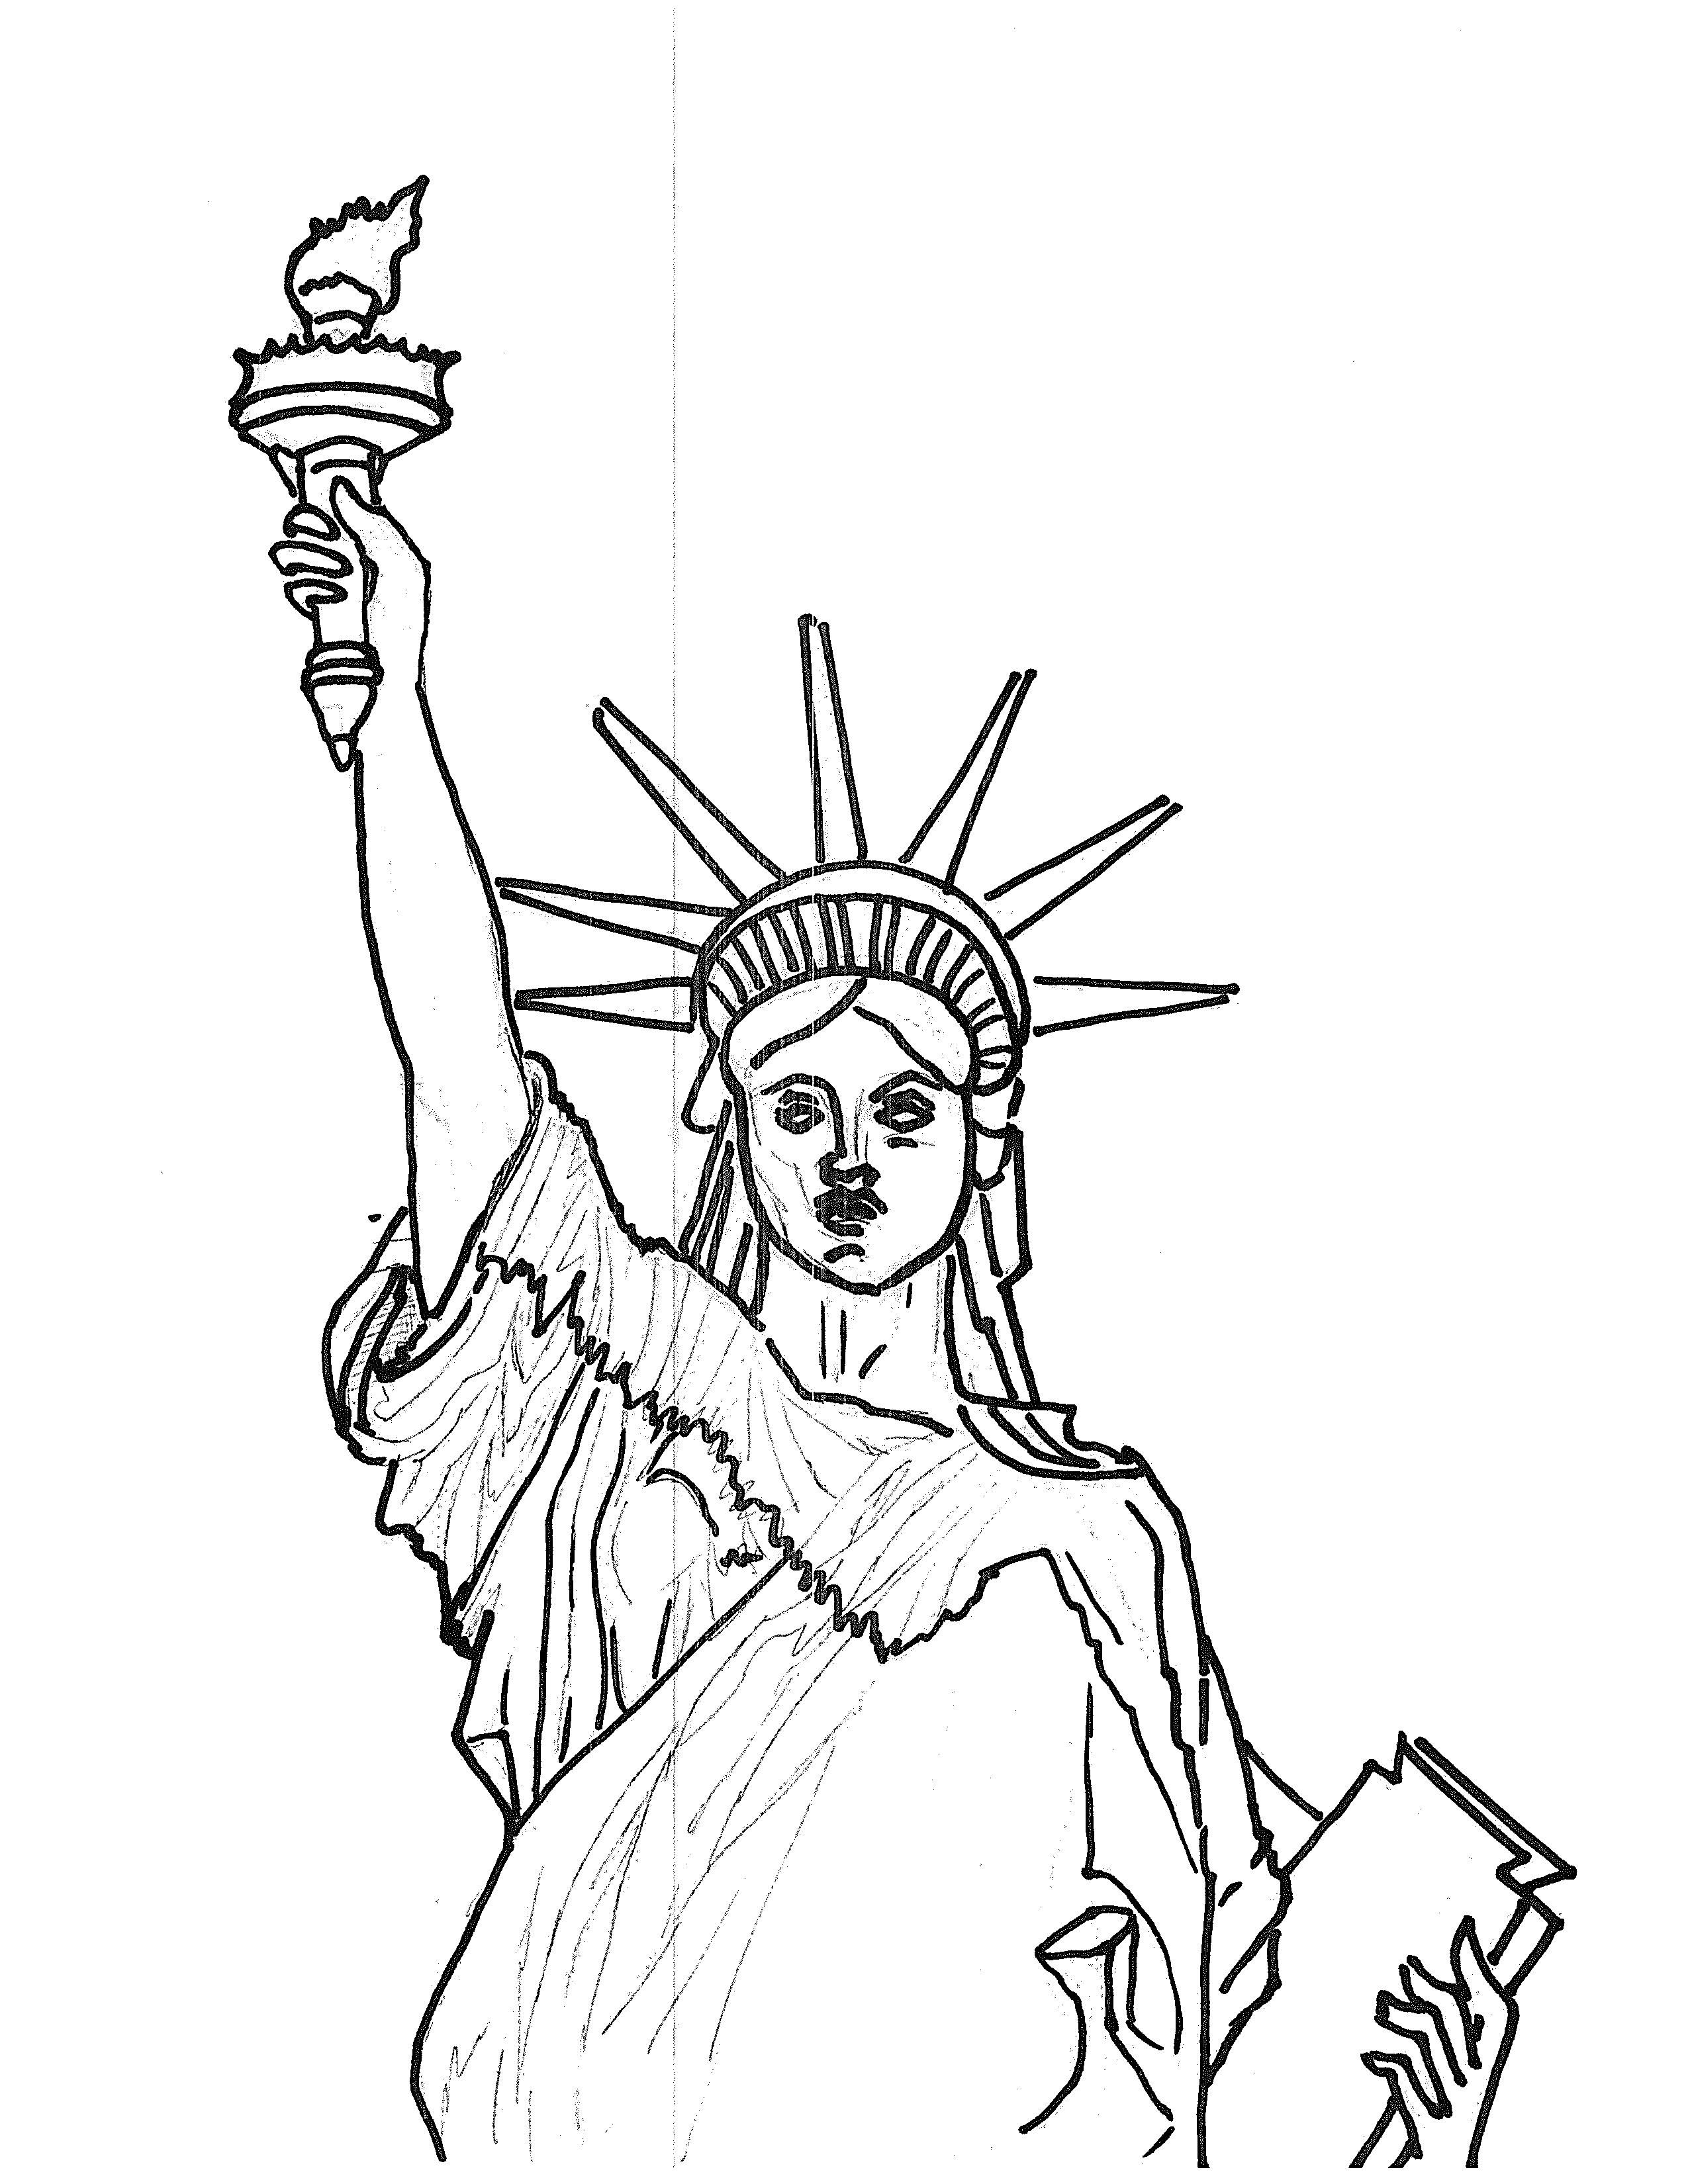 statue of liberty drawing step for step statue of liberty drawing step for step step liberty drawing statue for of step